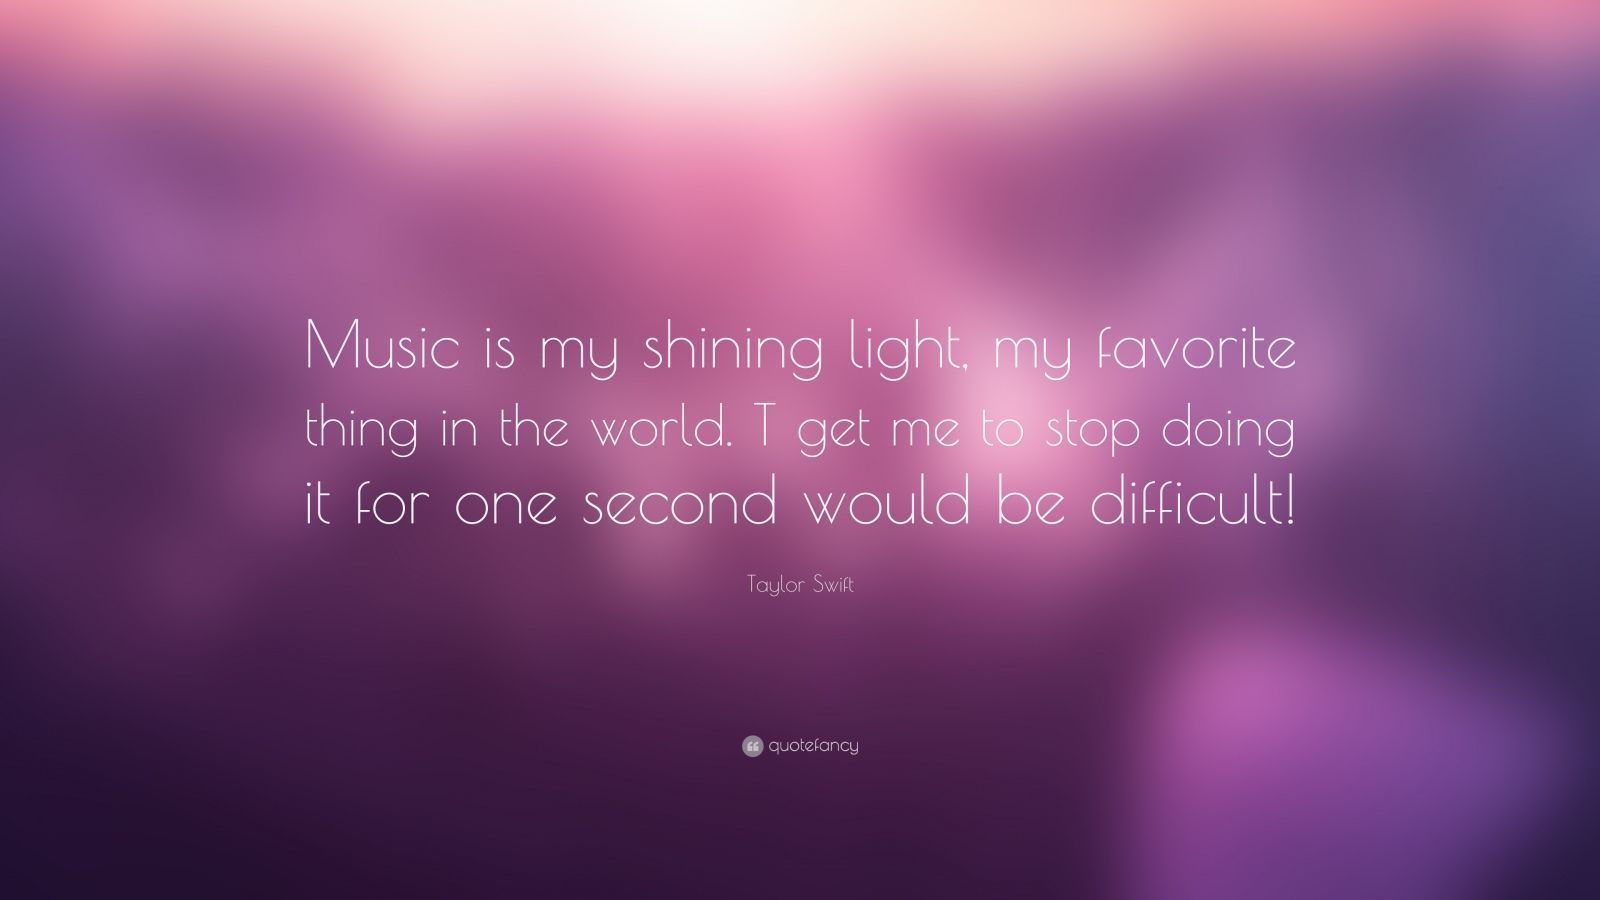 """Taylor Swift Quote: """"Music is my shining light, my favorite thing in the world. T get me to stop doing it for one second would be difficult!"""""""